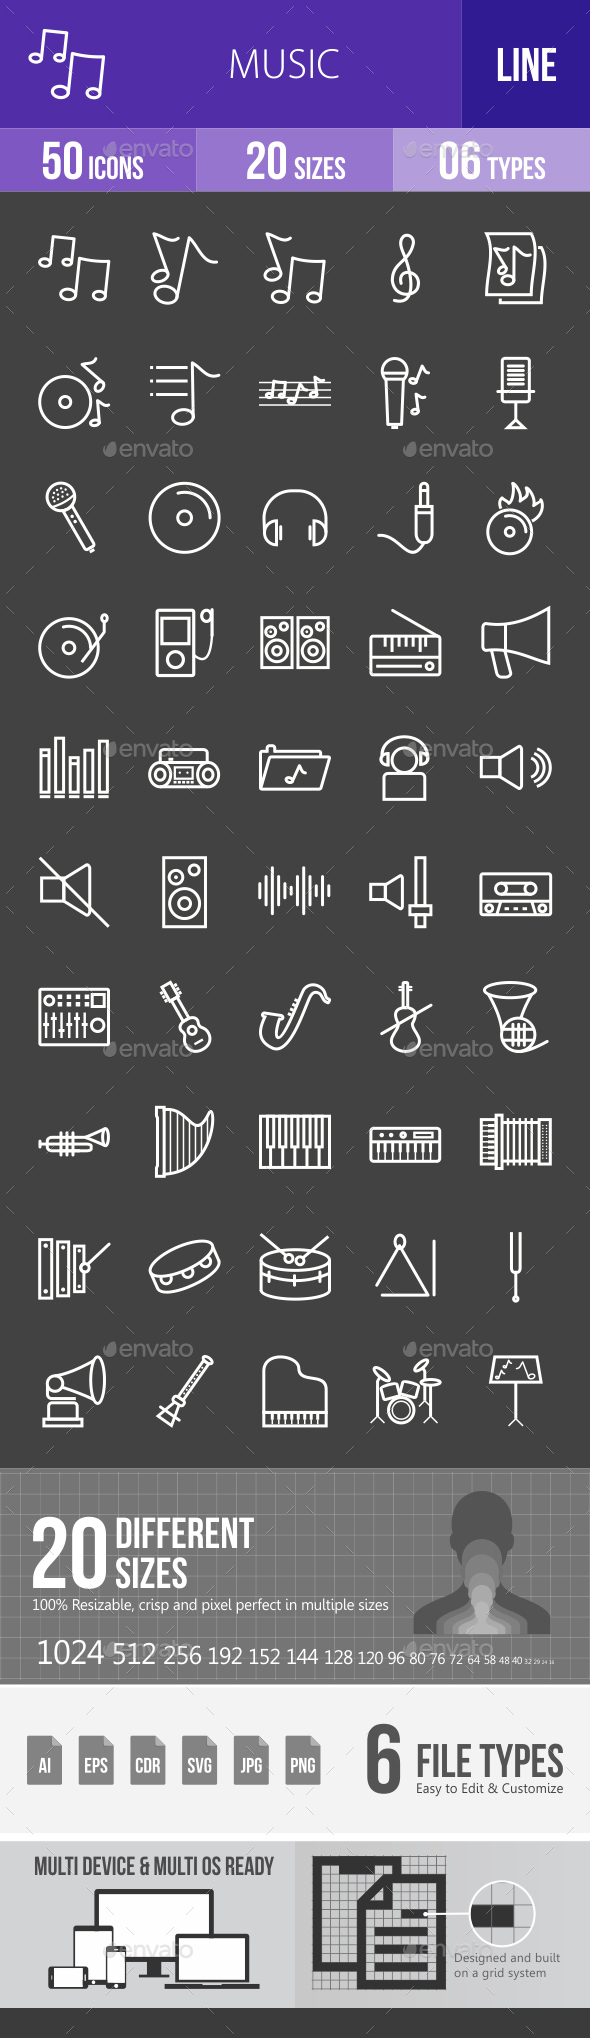 Music Line Inverted Icons - Icons